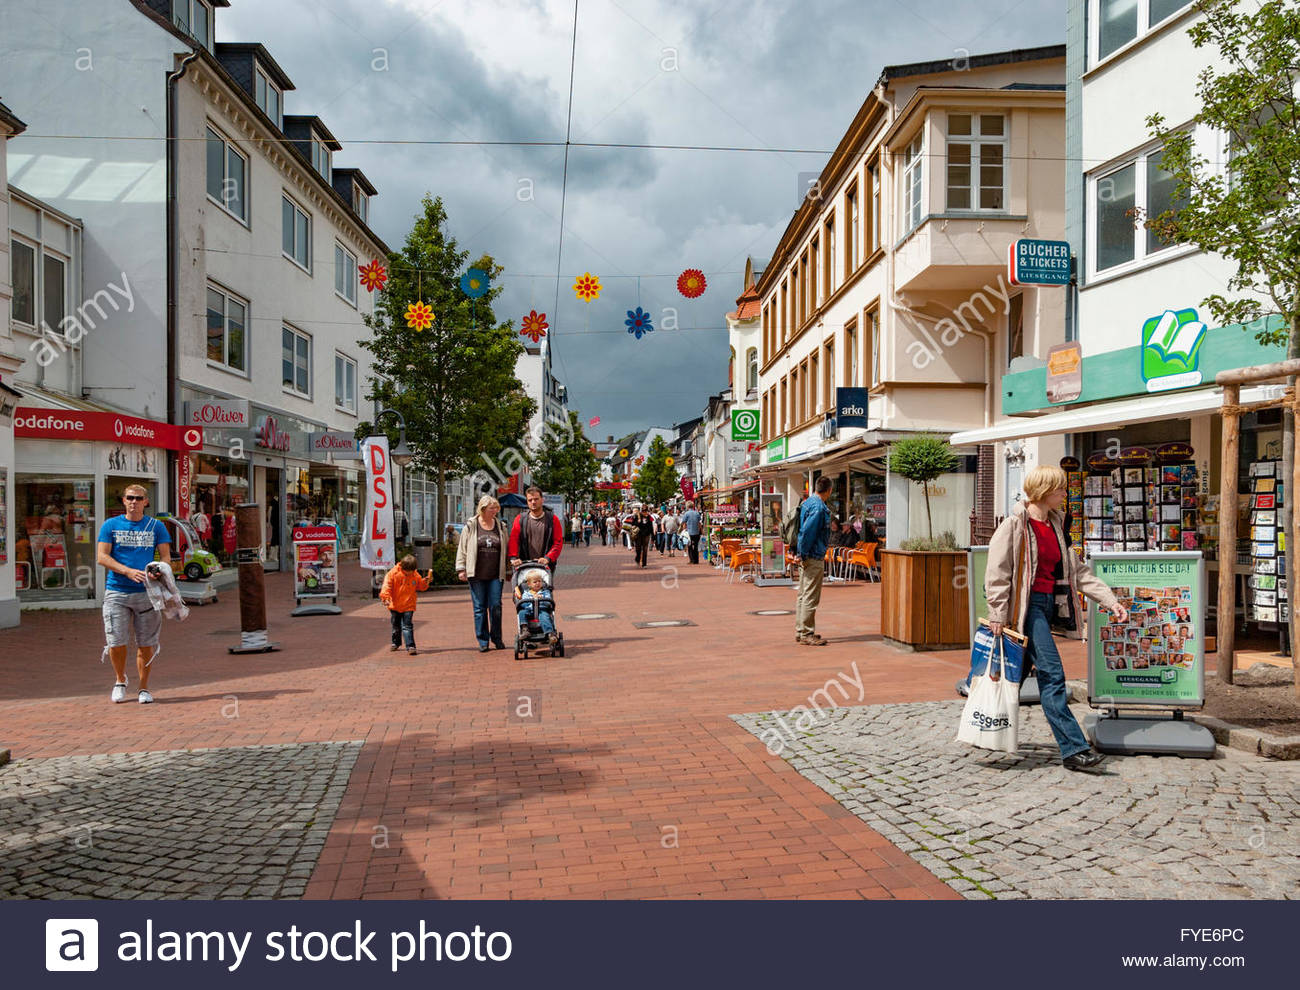 People shop and brows the stores on Stadtweg in the city of Schleswig, Germany. - Stock Image